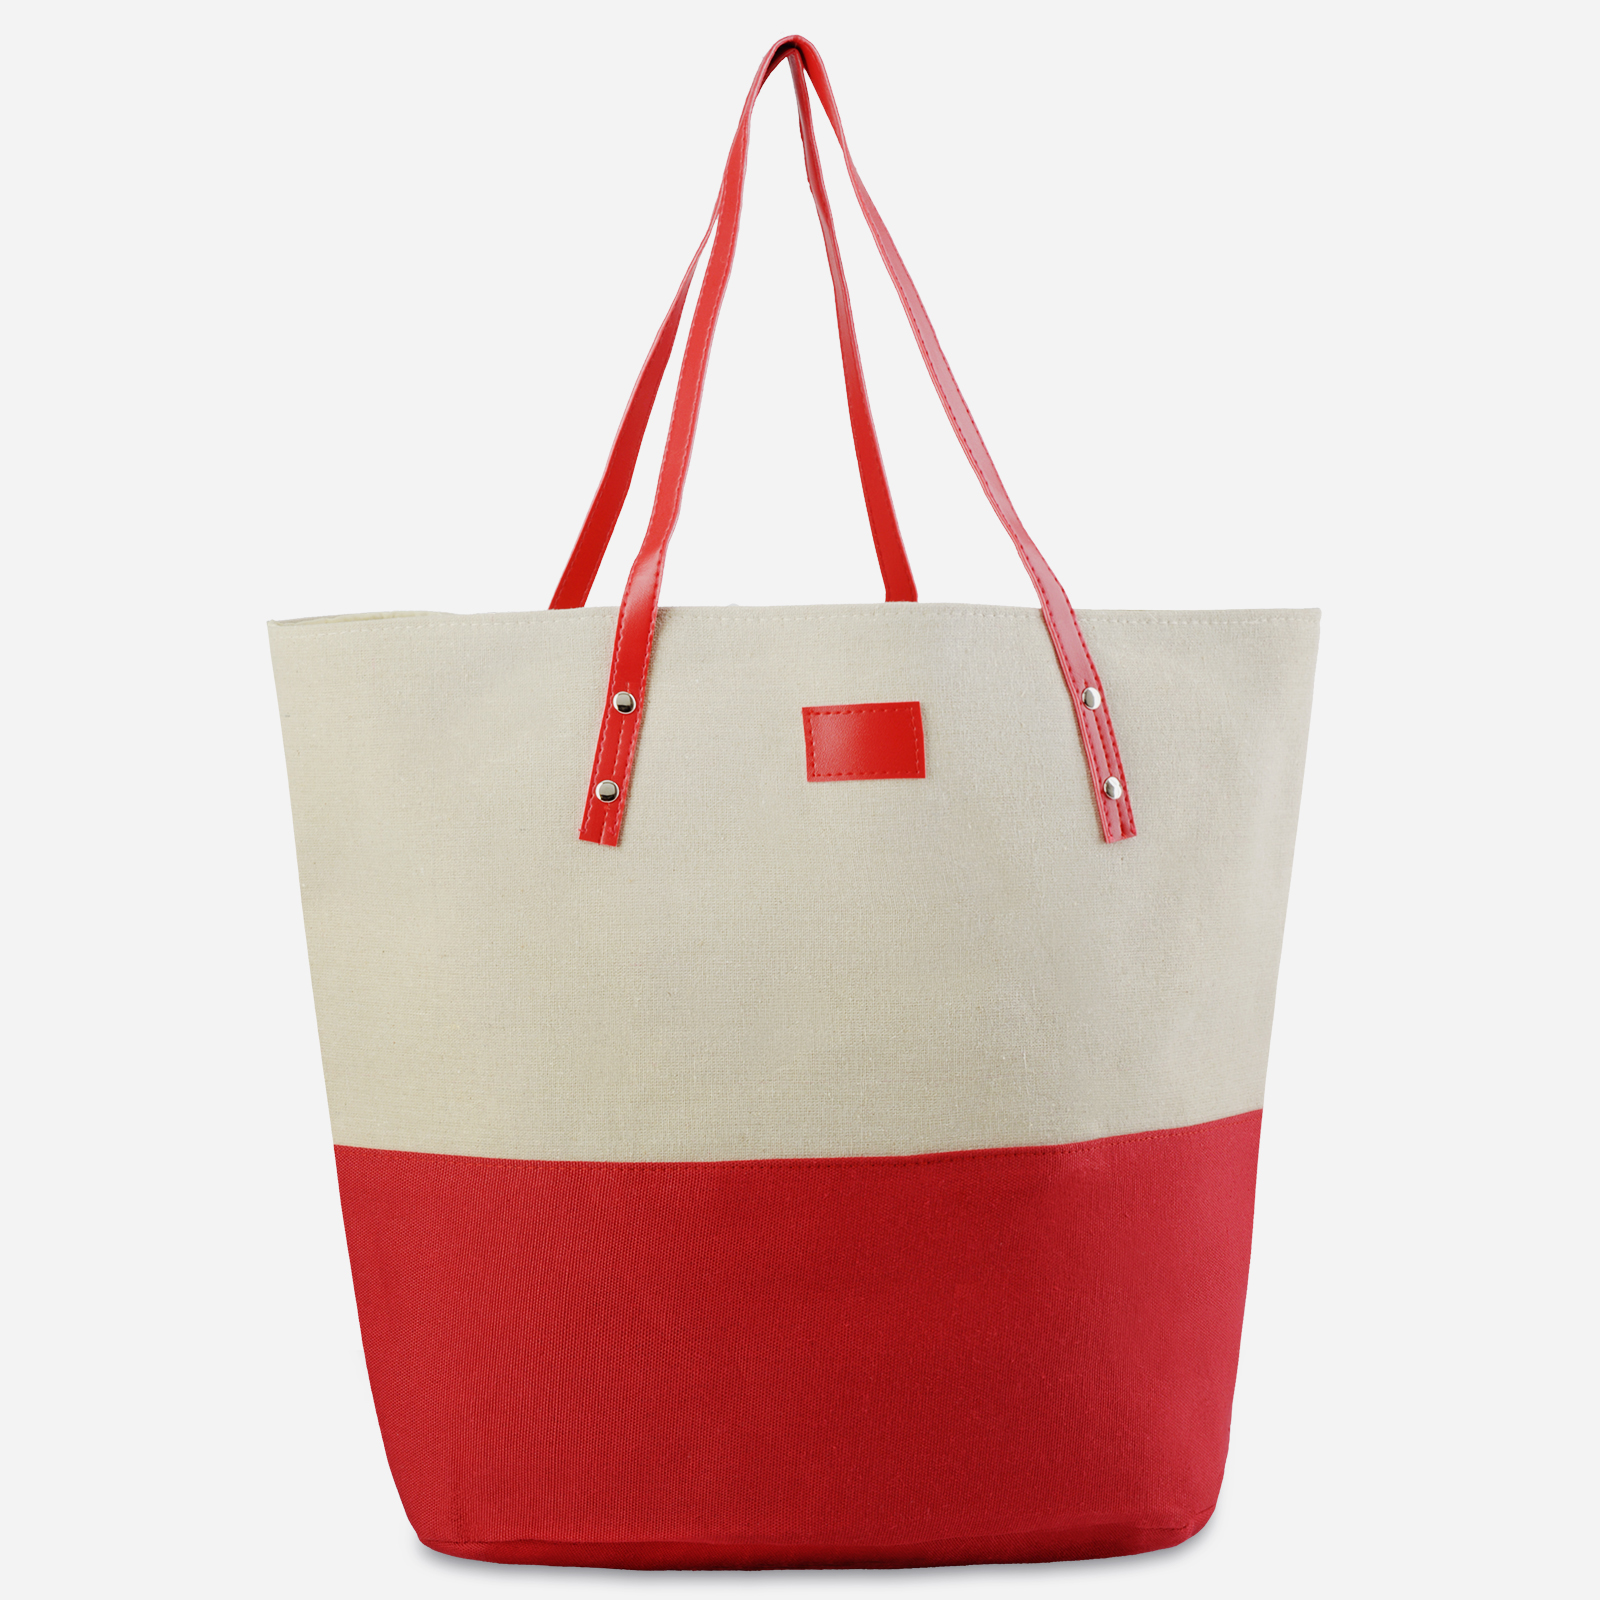 MQ-00100-rouge-naturel-F16-sac-plage-main-coton-rouge